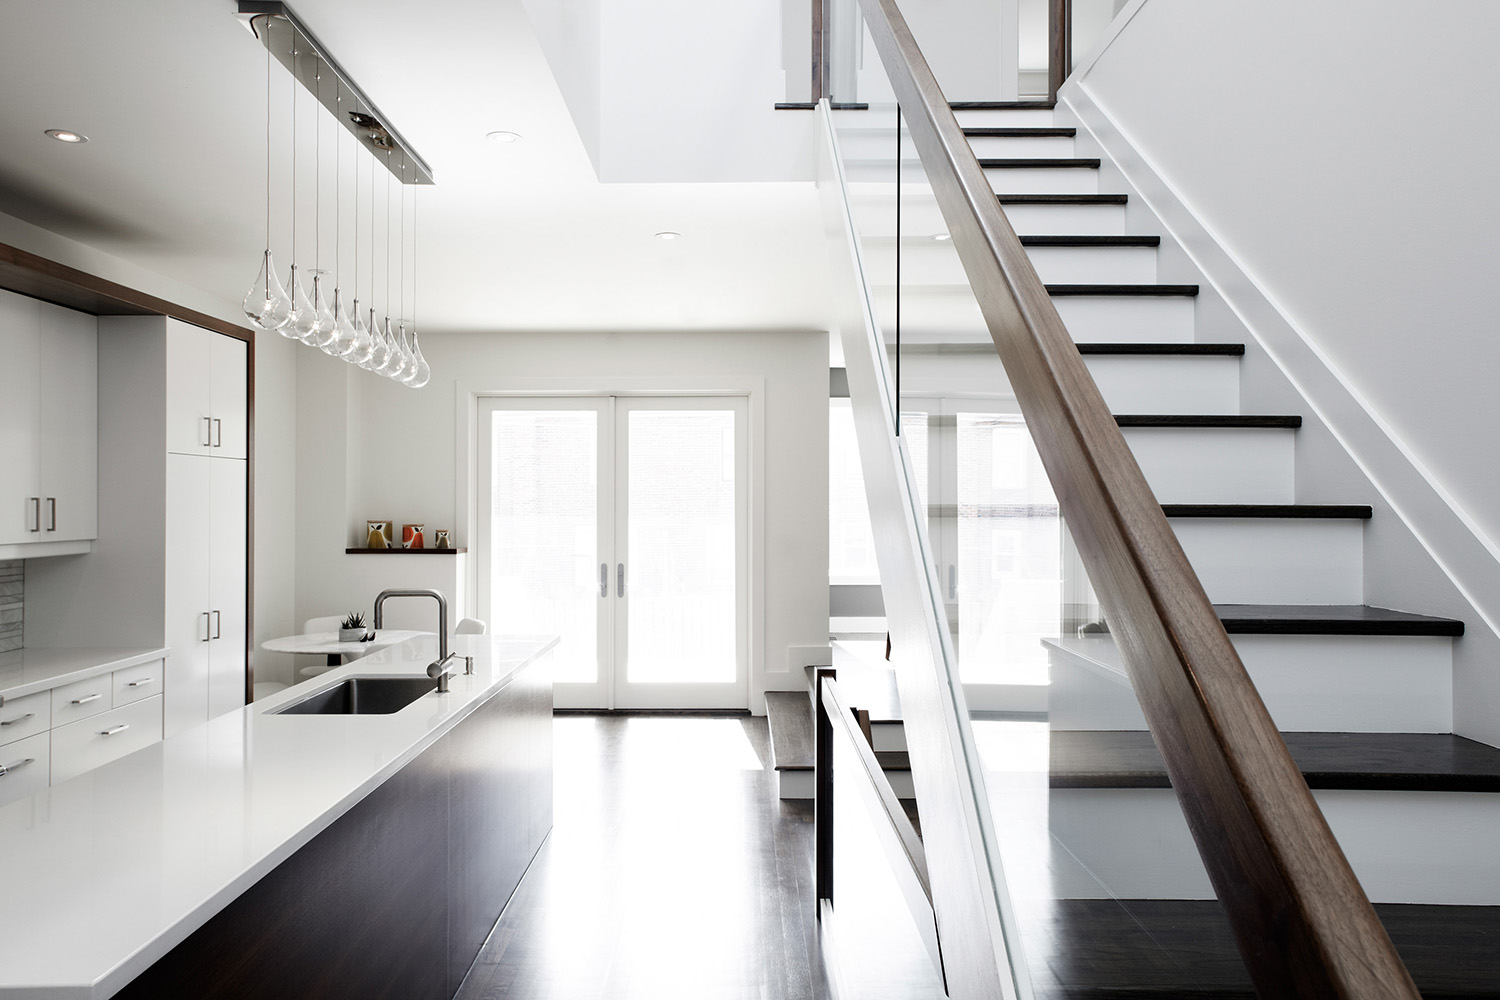 Open staircase with wood handrail open to kitchen with glass pendant light